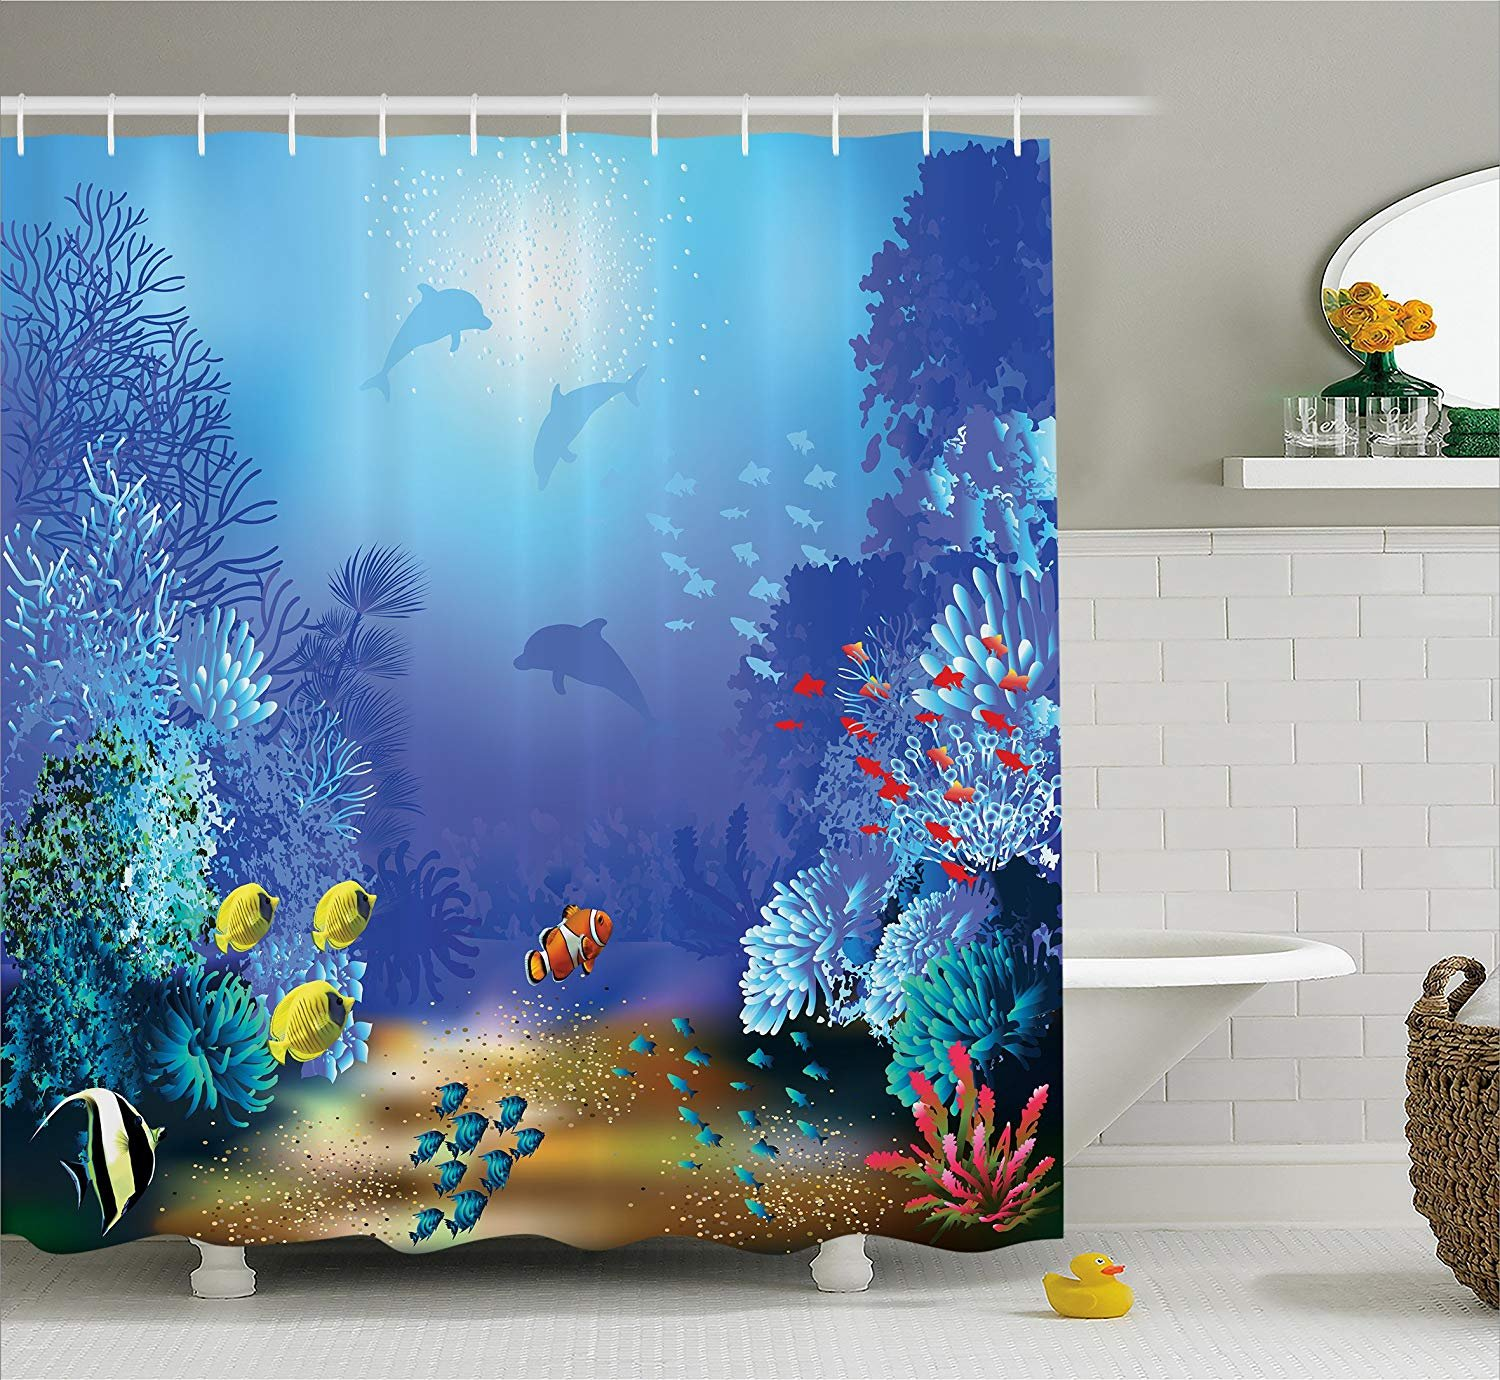 Nyngei Ocean Animal Decor Shower Curtain by Underwater Coral Reef Polyps Algae Dolphins and Goldfishes Bubbles Deep Print Fabric Bathroom Decor Set with Hooks 180CM Extra Long Blue